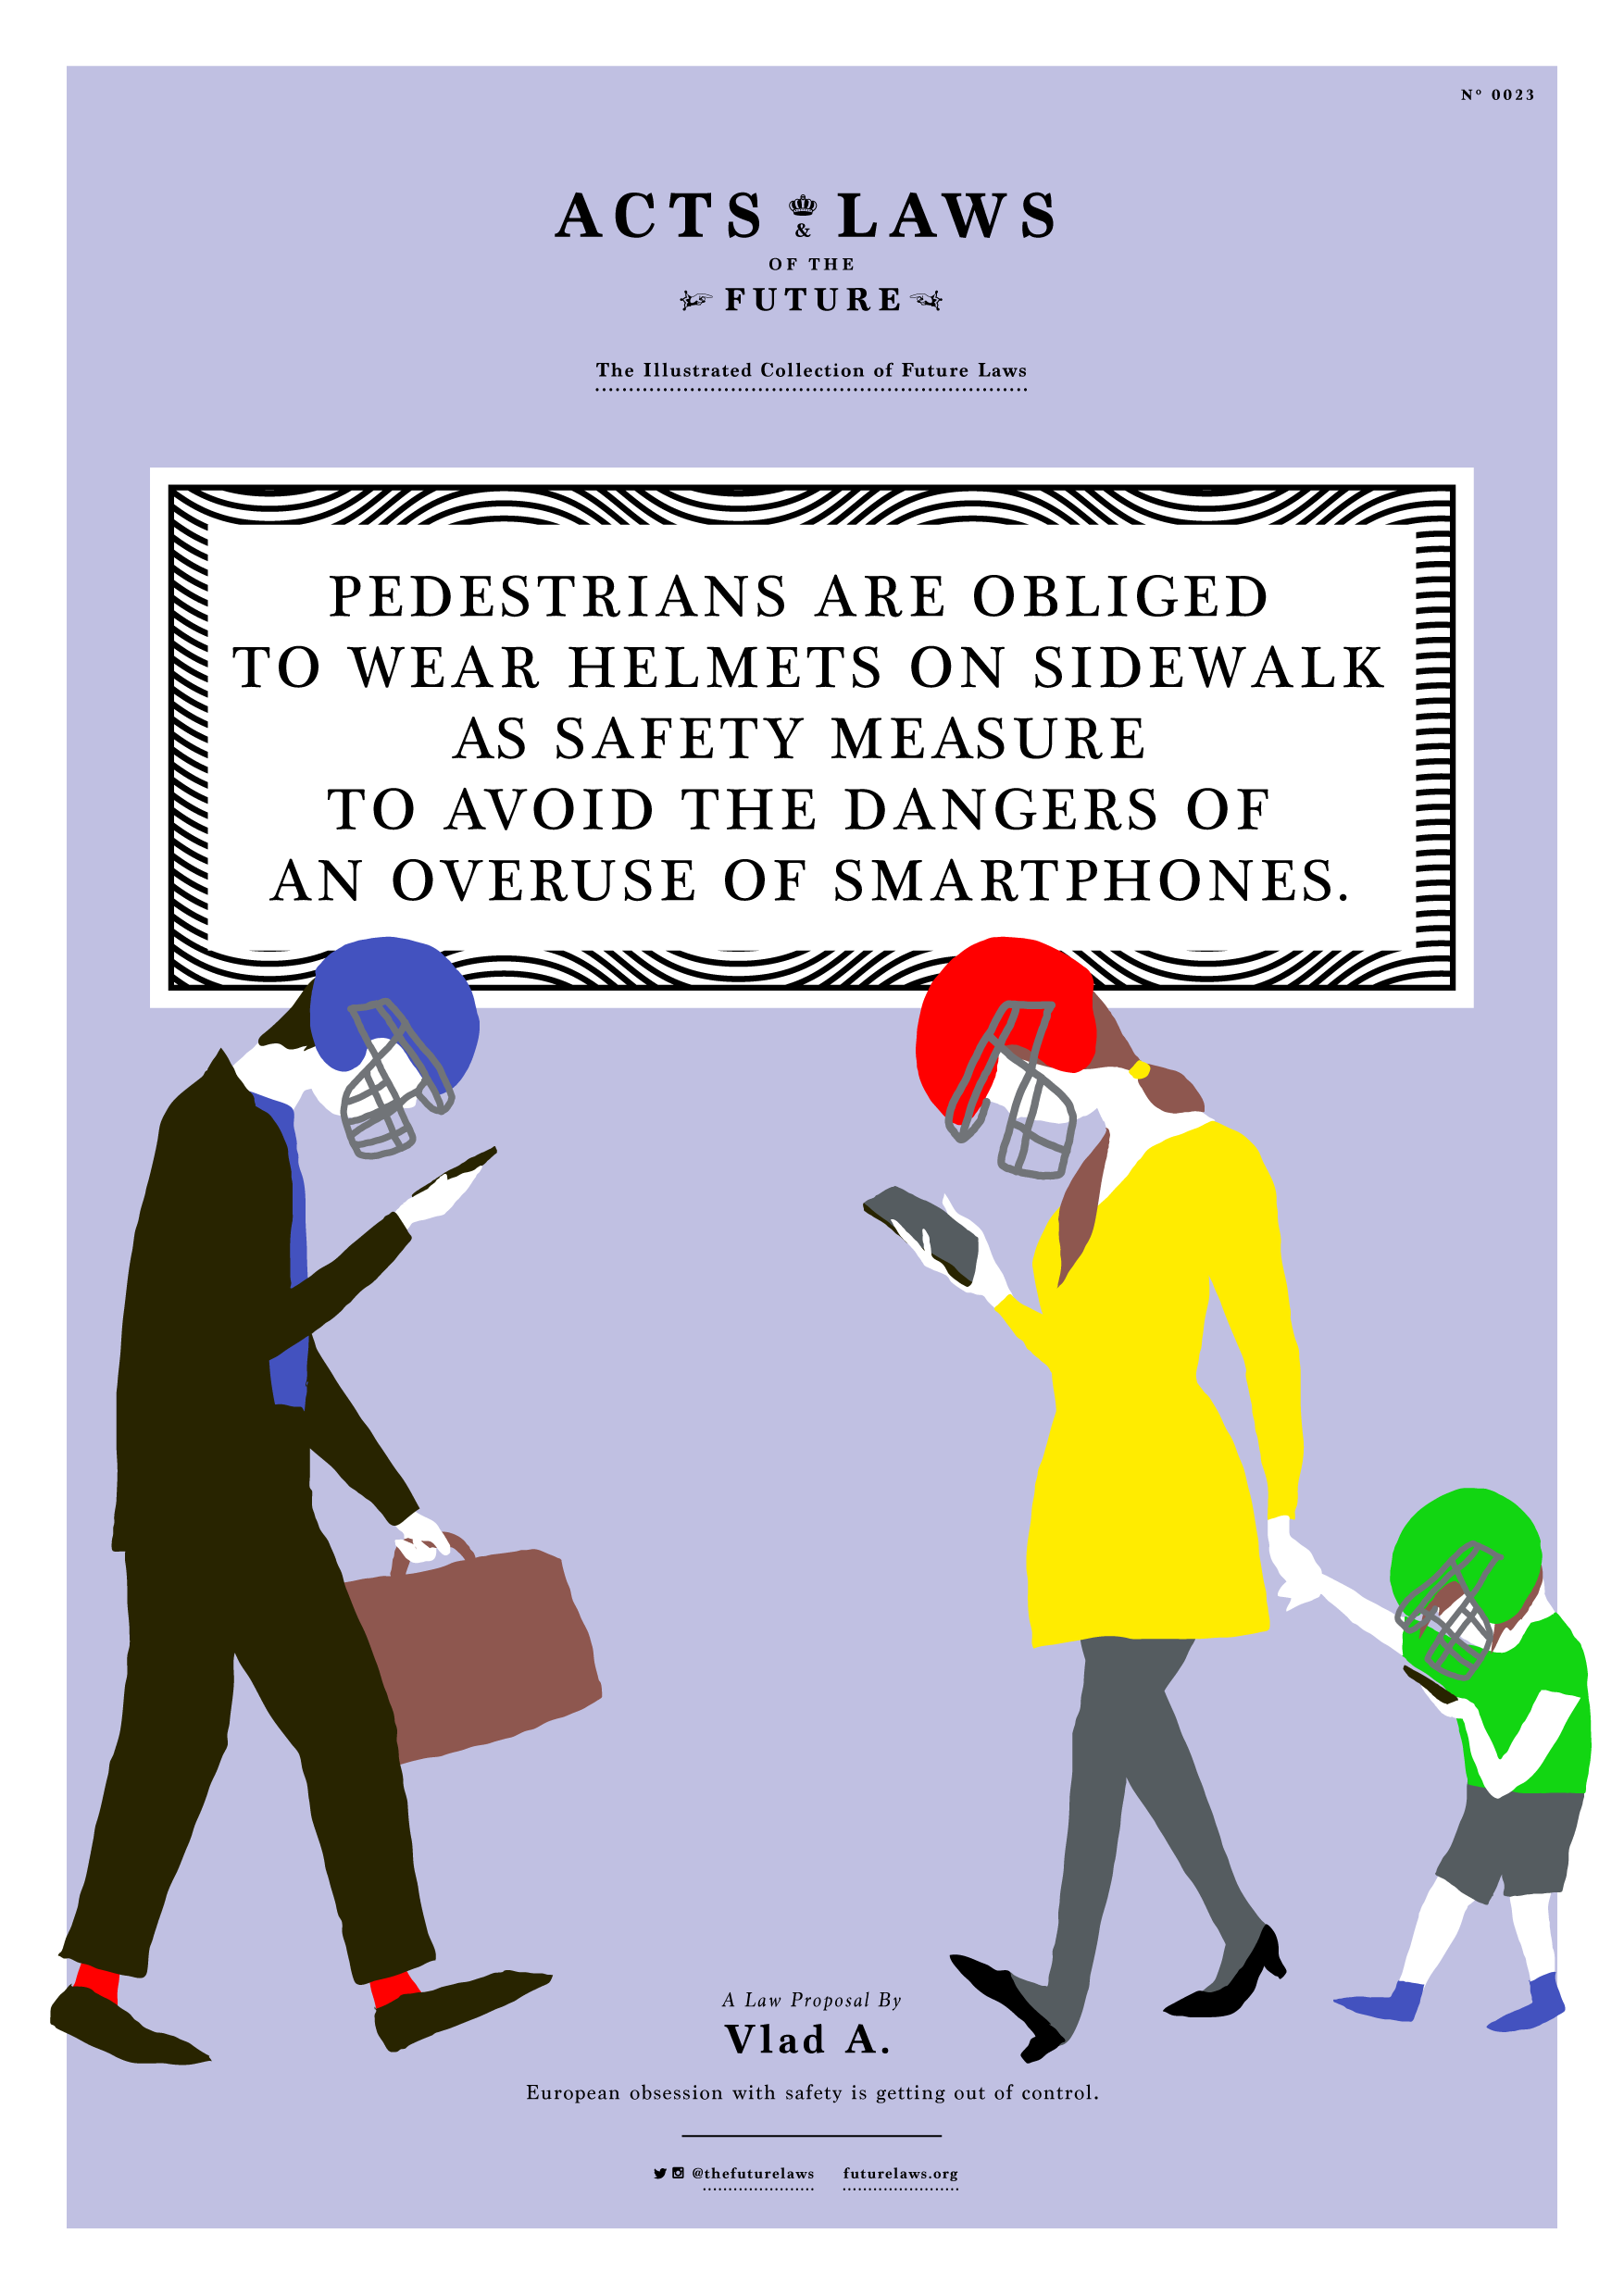 Pedestrians are obliged to wear helmets on the sidewalk as safety measures to avoid the dangers of an overuse of smartphones.